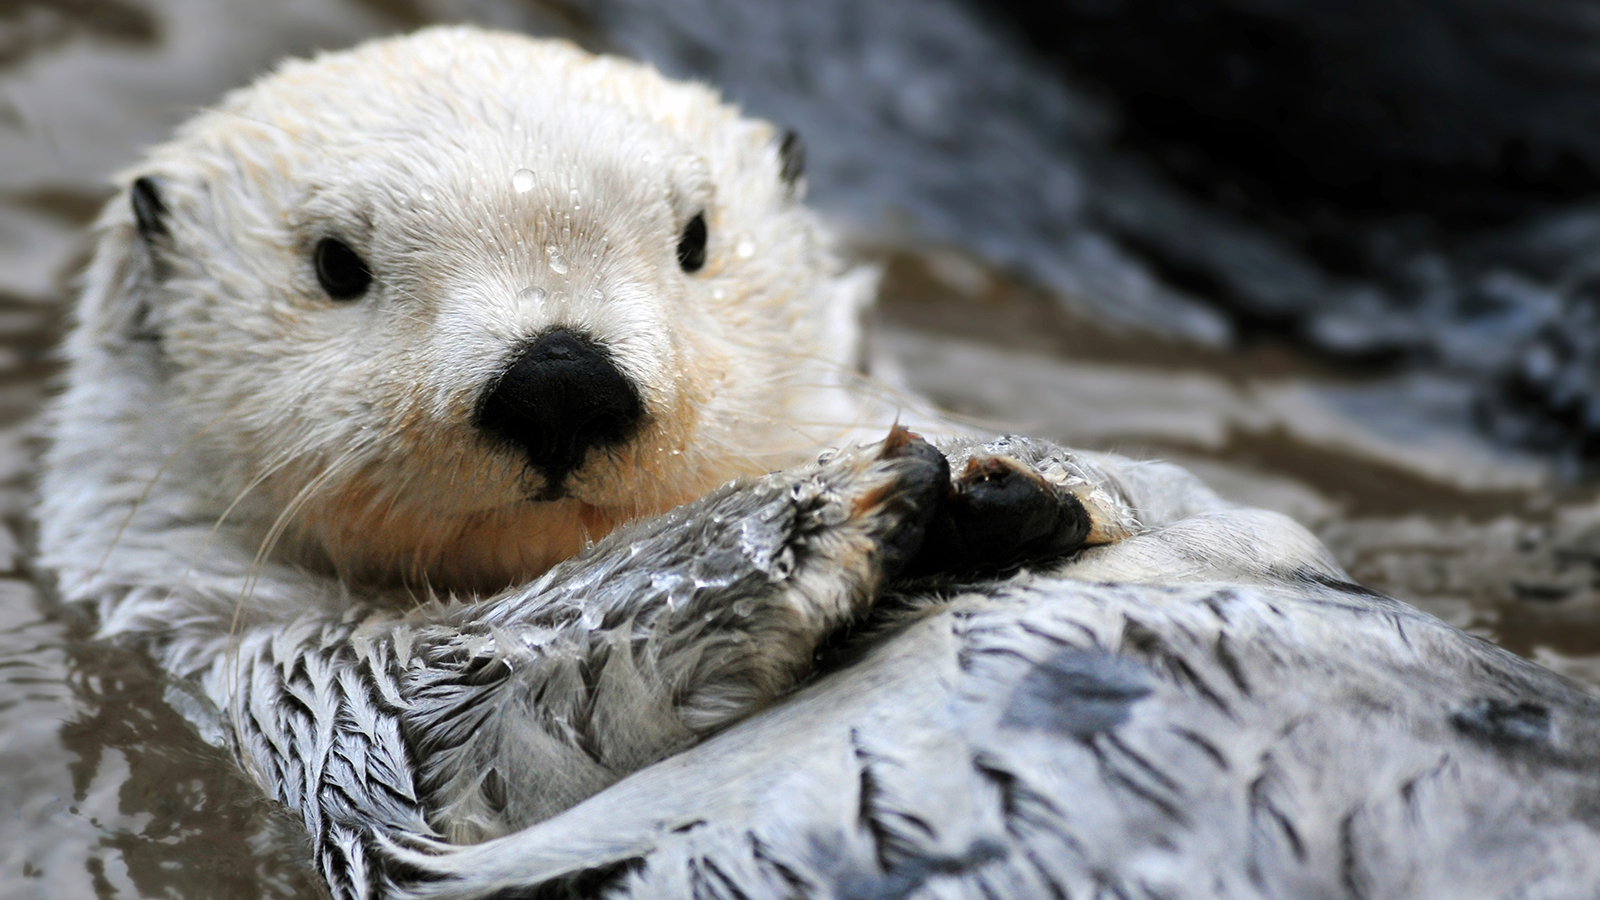 38 Sea Otter Hd Wallpaper   ImgHD Browse and Download Images 1600x900